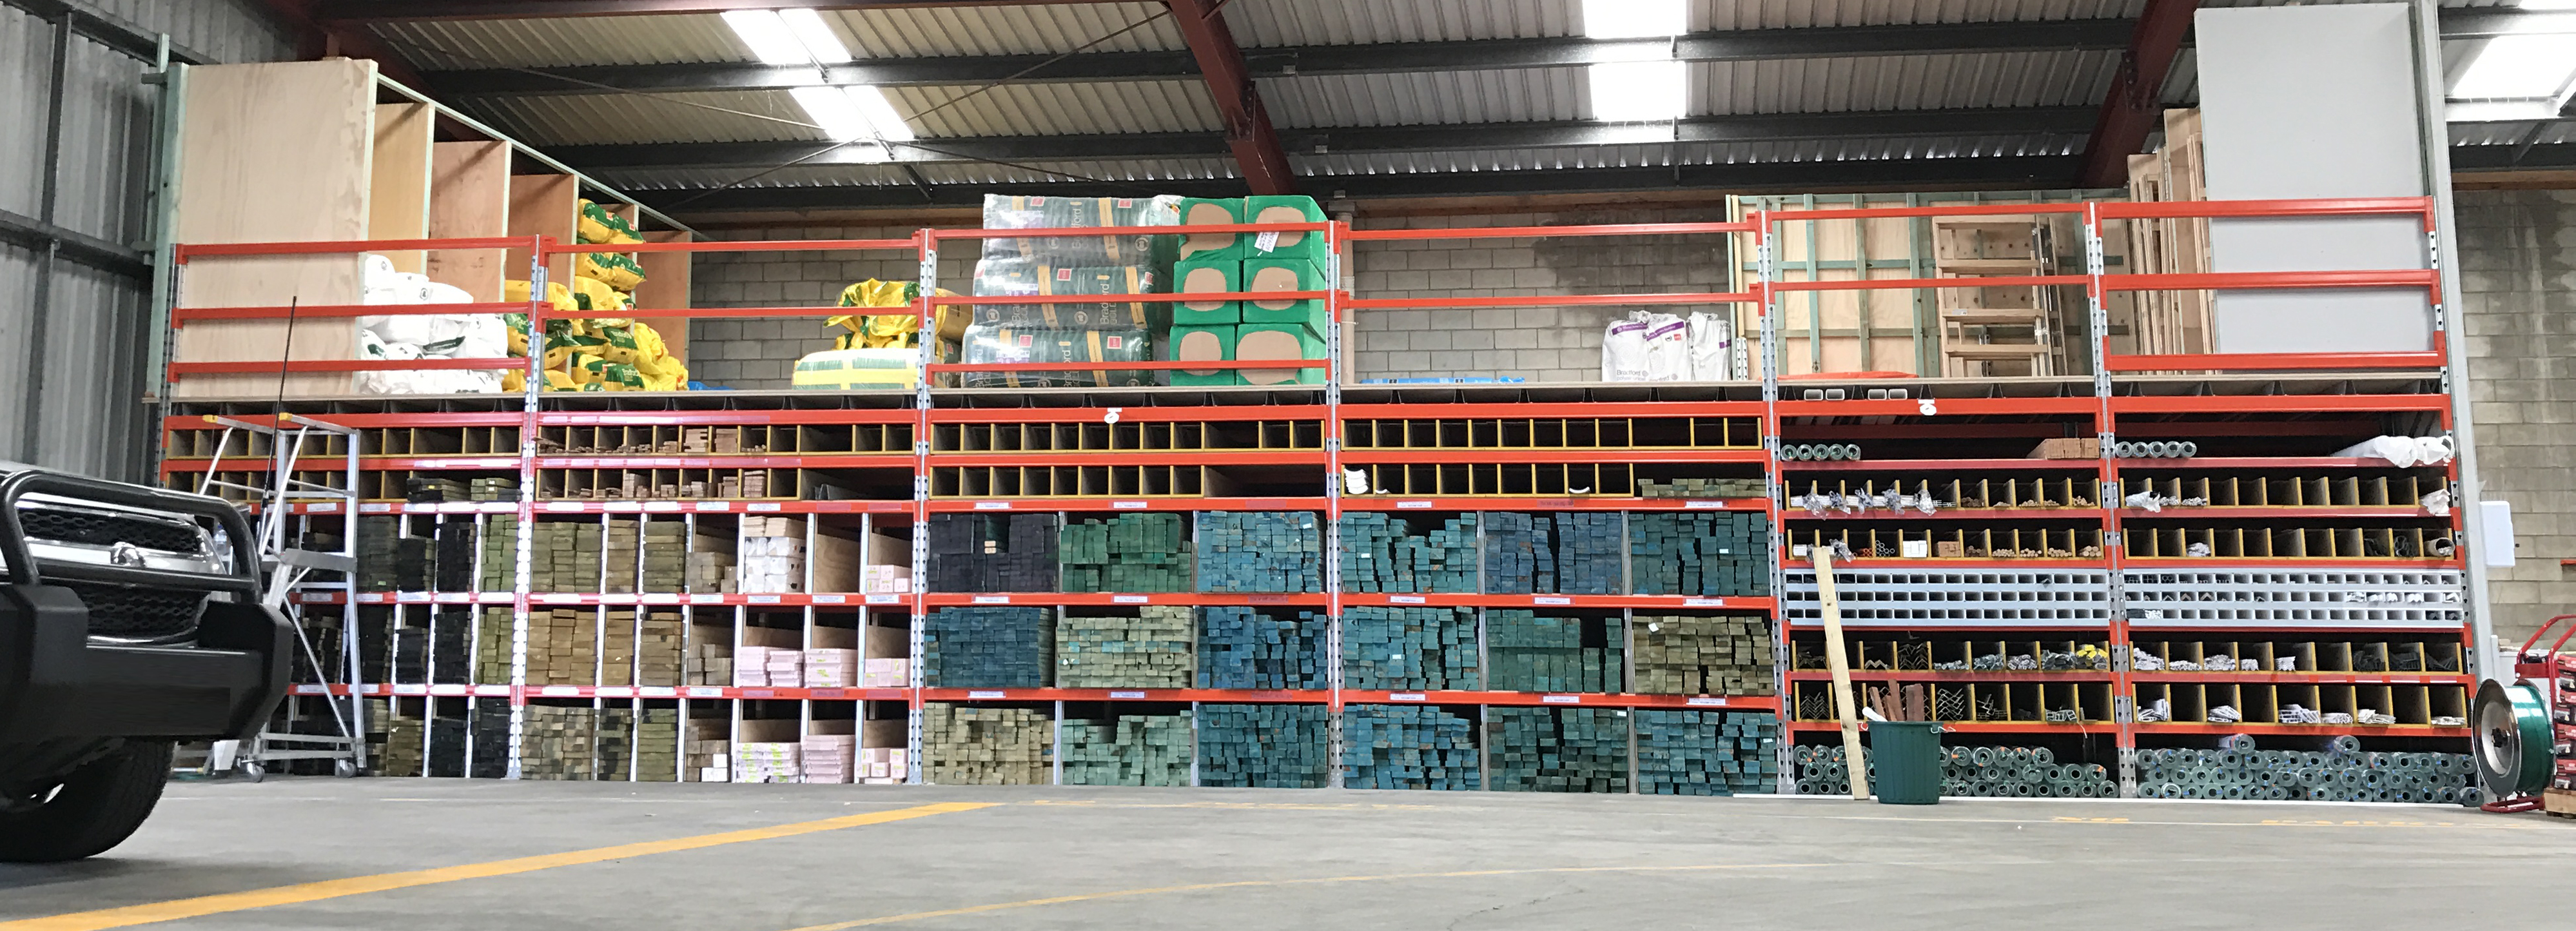 Mitre 10 Warehouse Case Study Macrack Pallet Racking